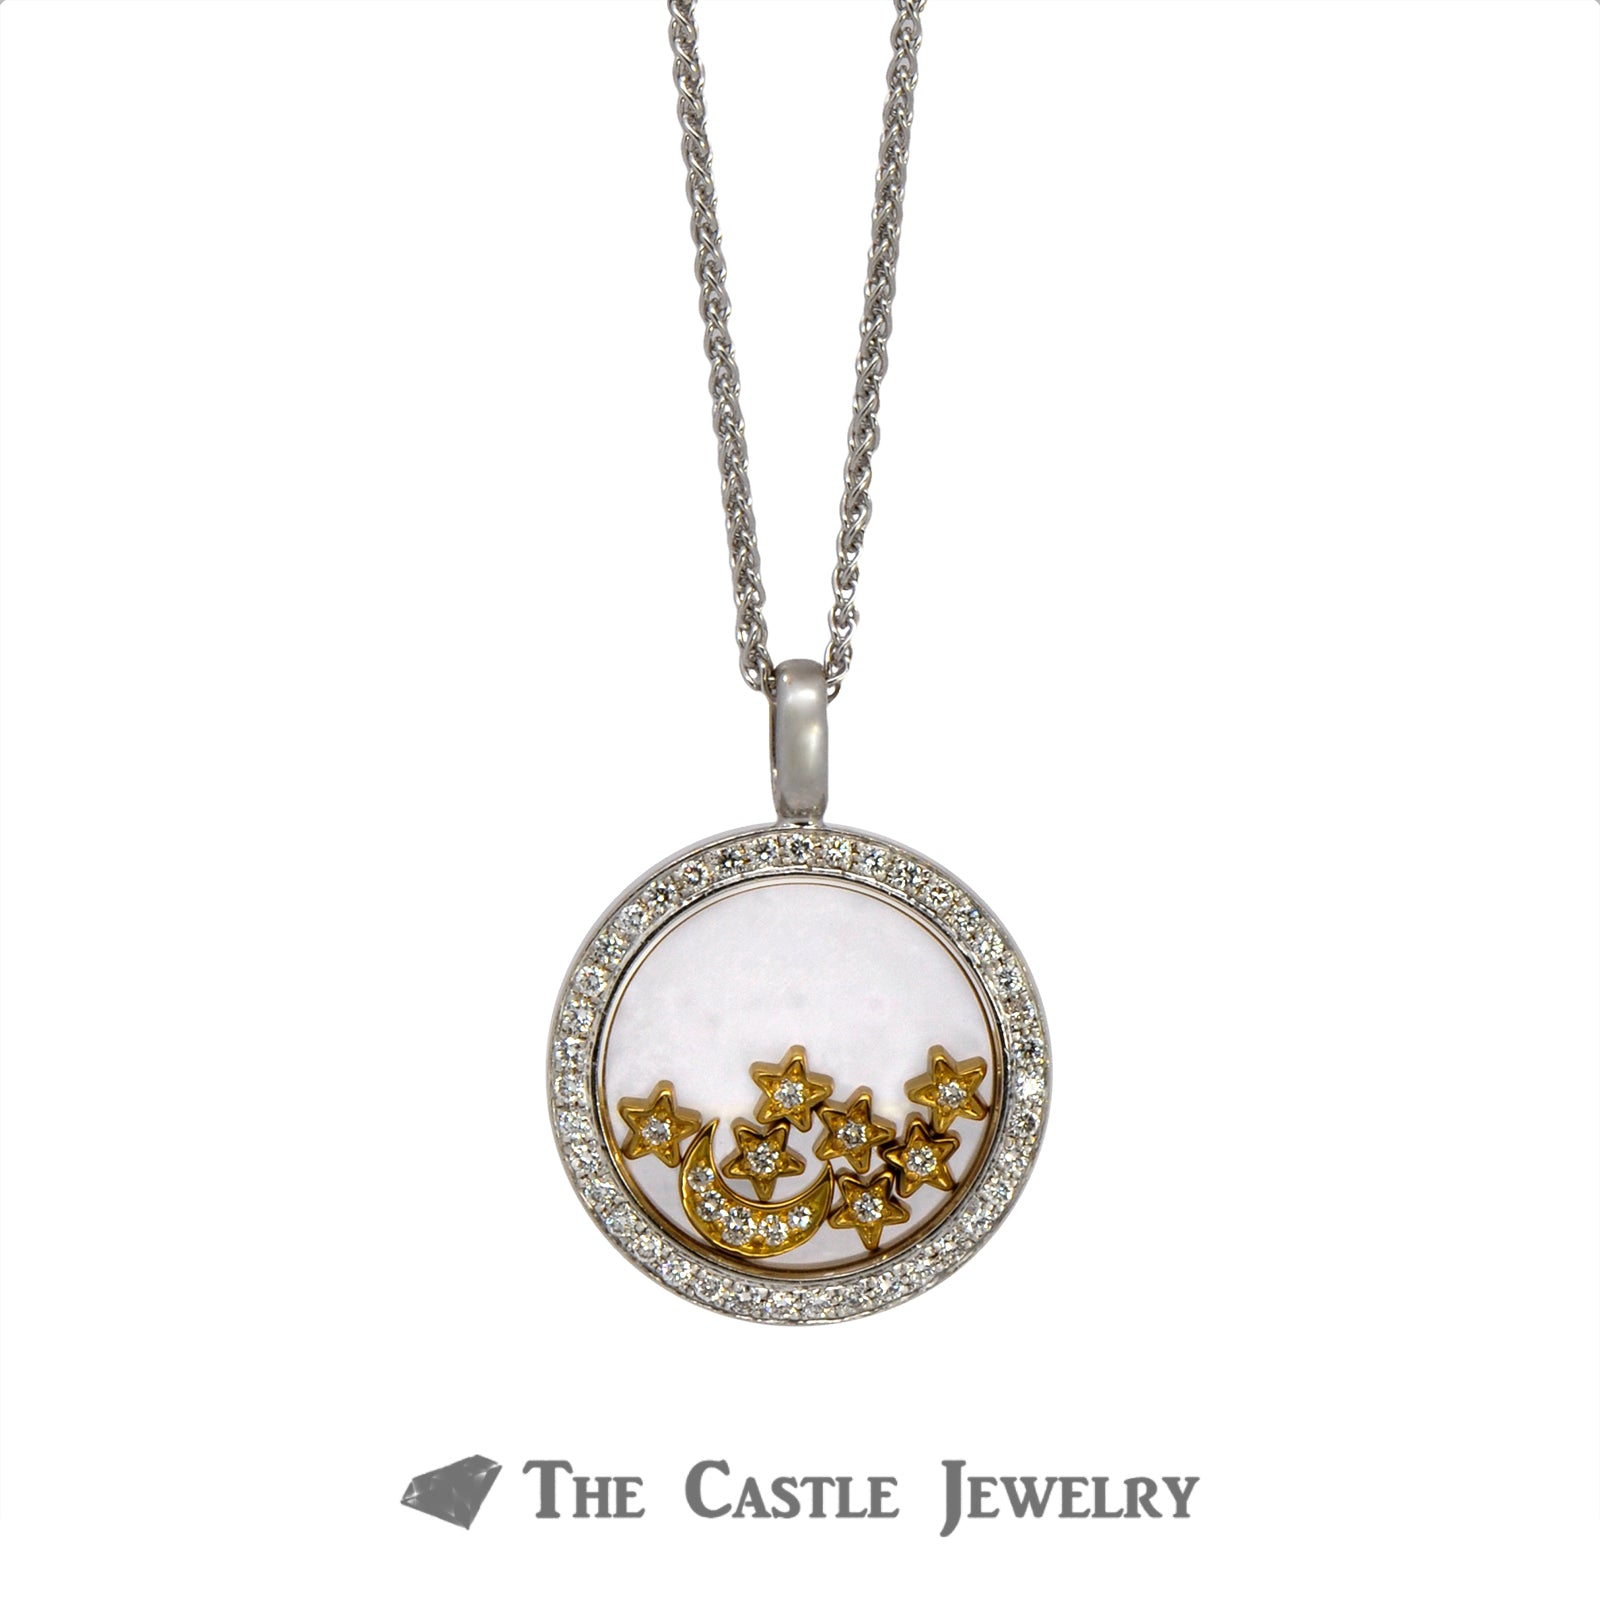 Two Tone Chopard Designer Necklace with Diamond Encrusted Floating Moon & Stars-1